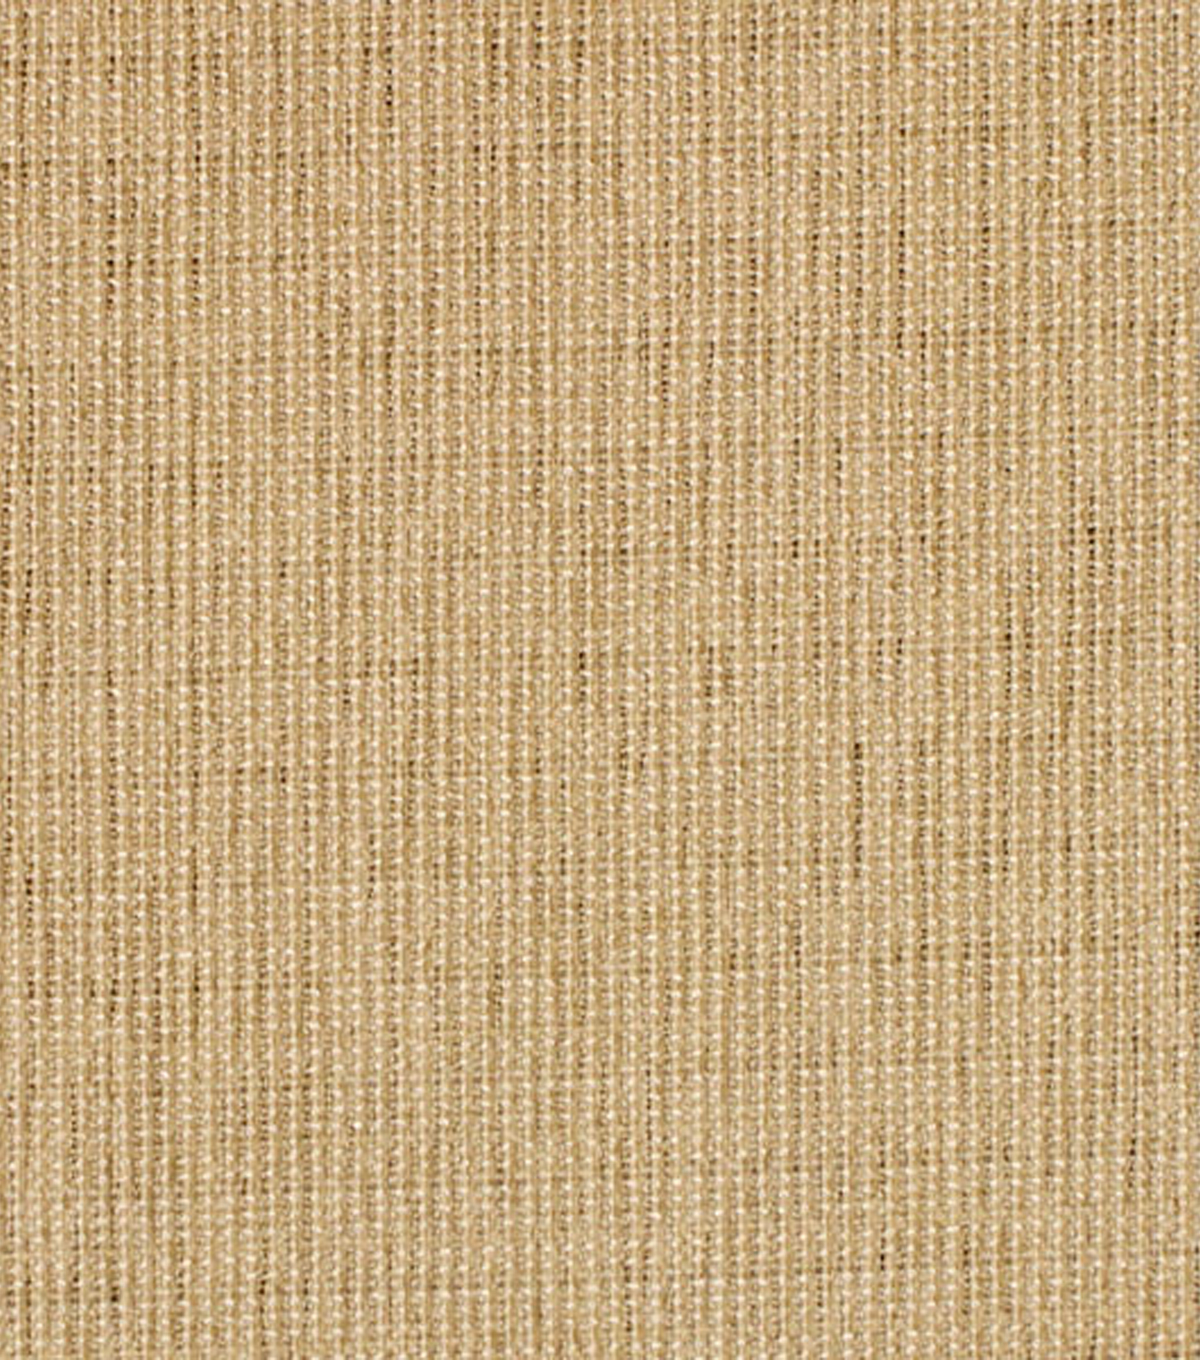 Home Decor 8\u0022x8\u0022 Fabric Swatch-Barrow  M8923-5852 Flax